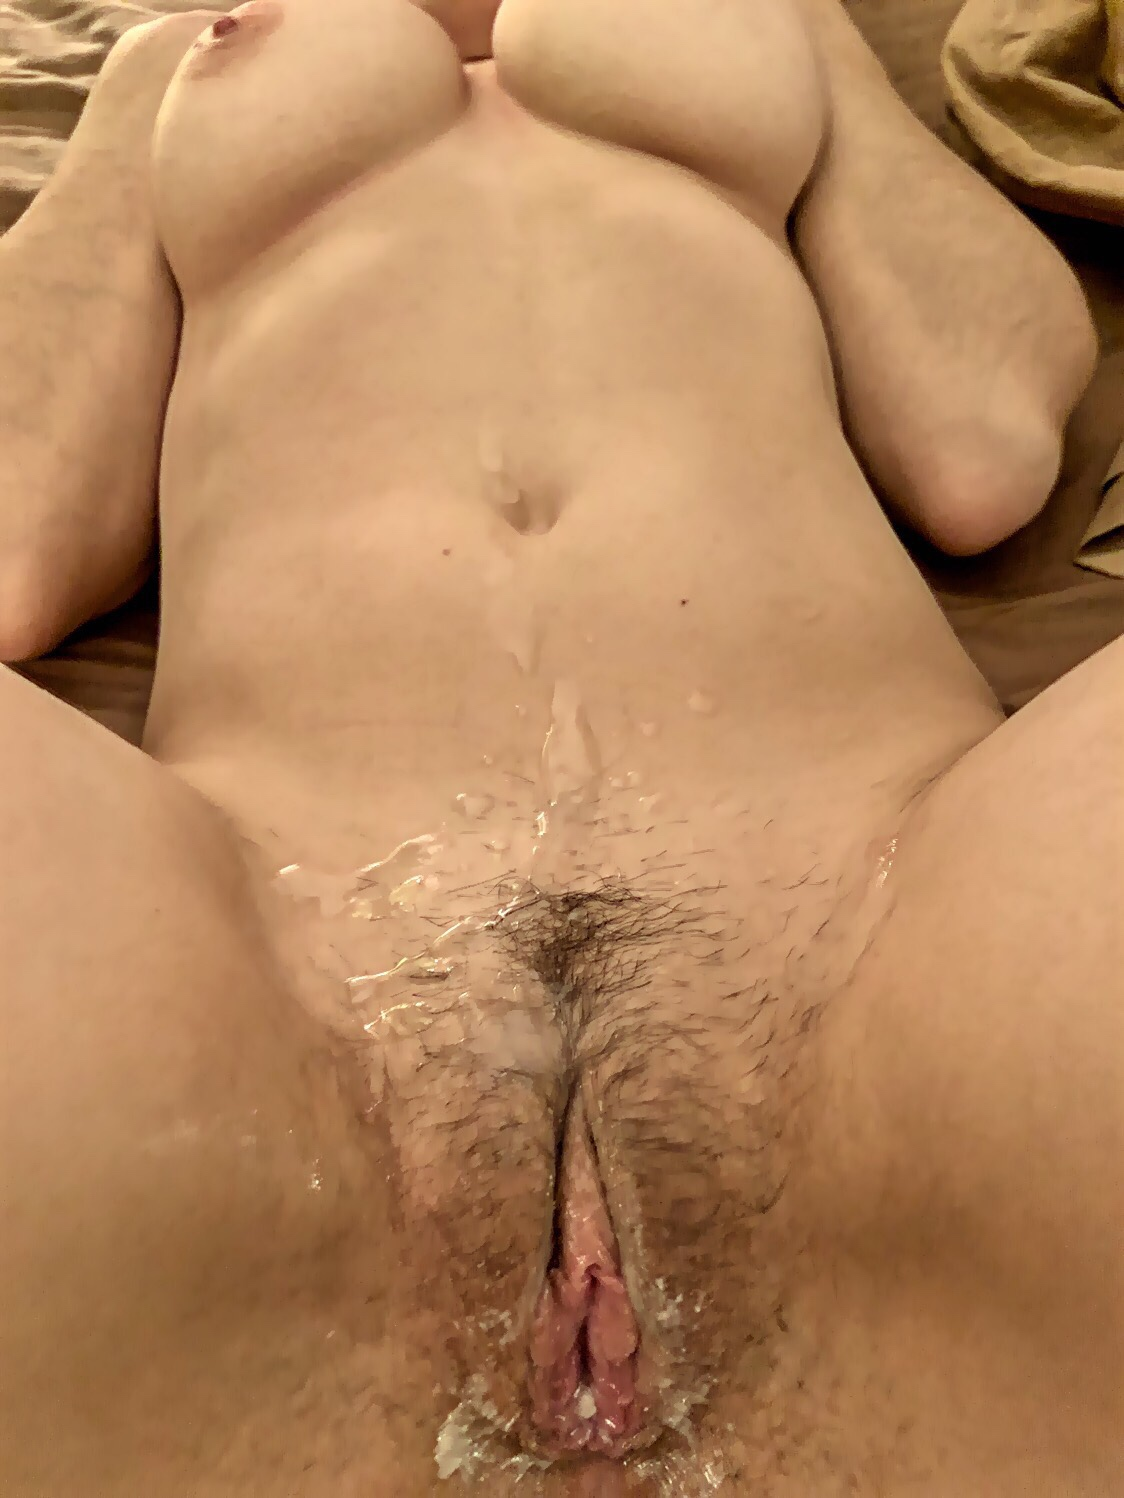 pussy type XVideos